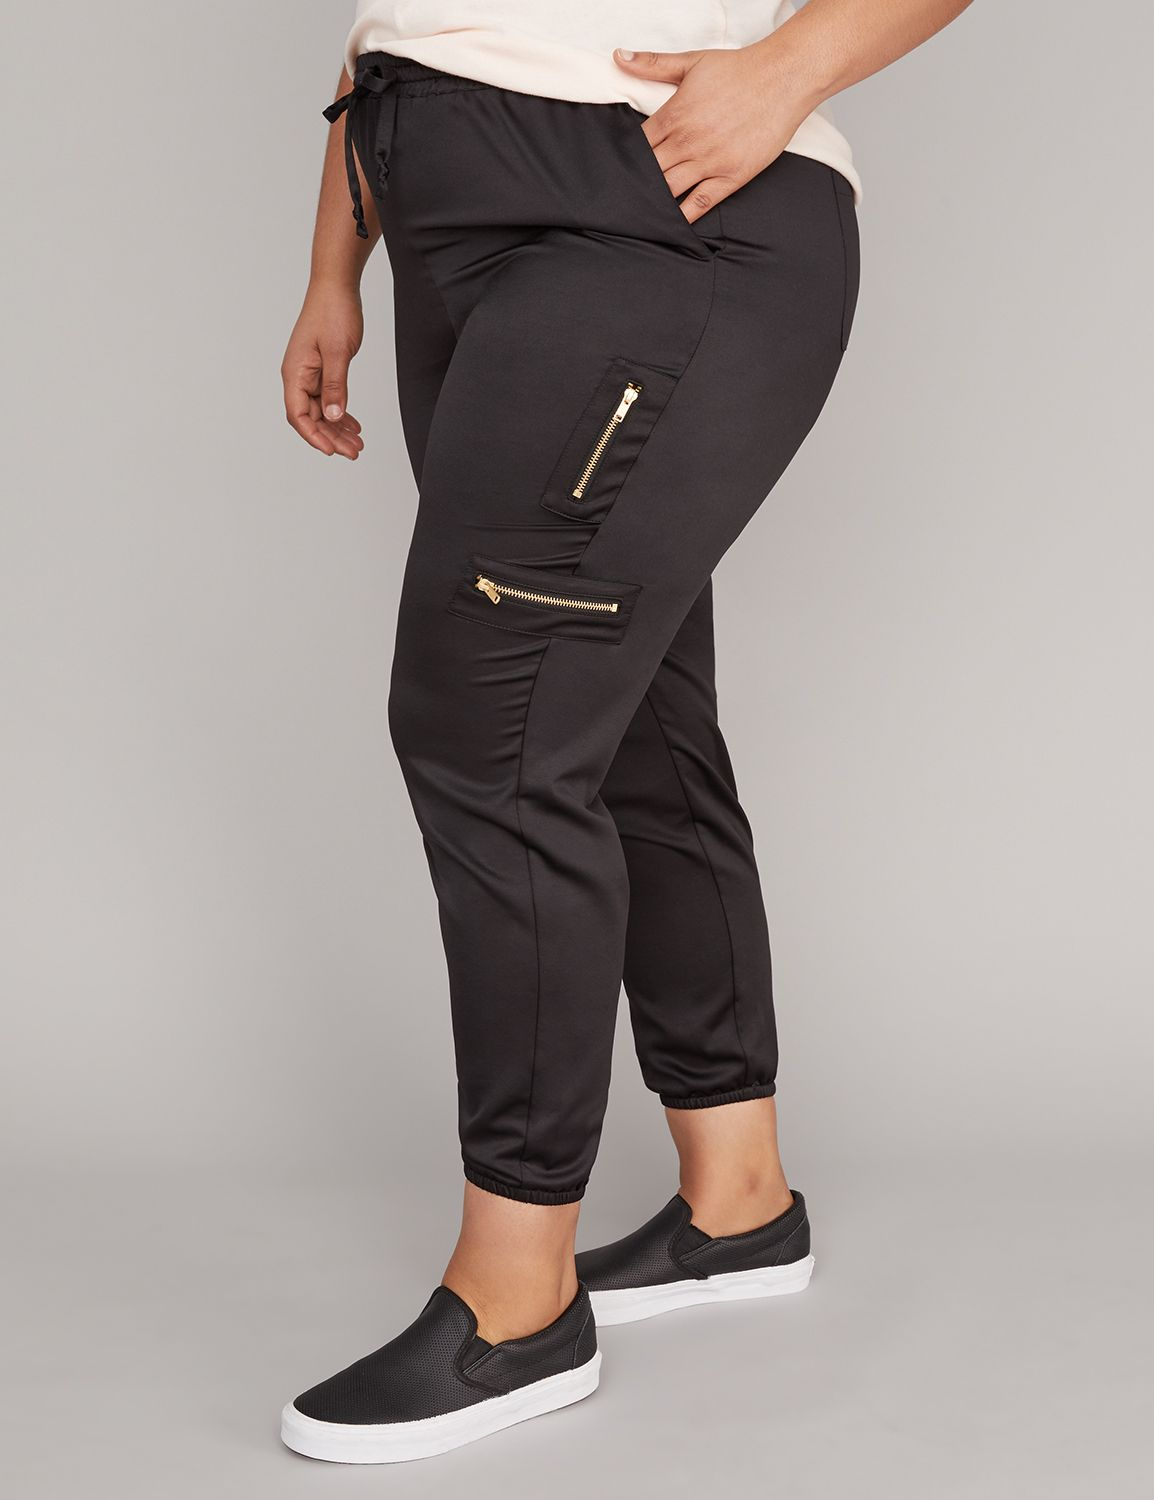 Lane Bryant Womens Zipper Detail Satin Active Cargo Pants 18/20 Pitch Black